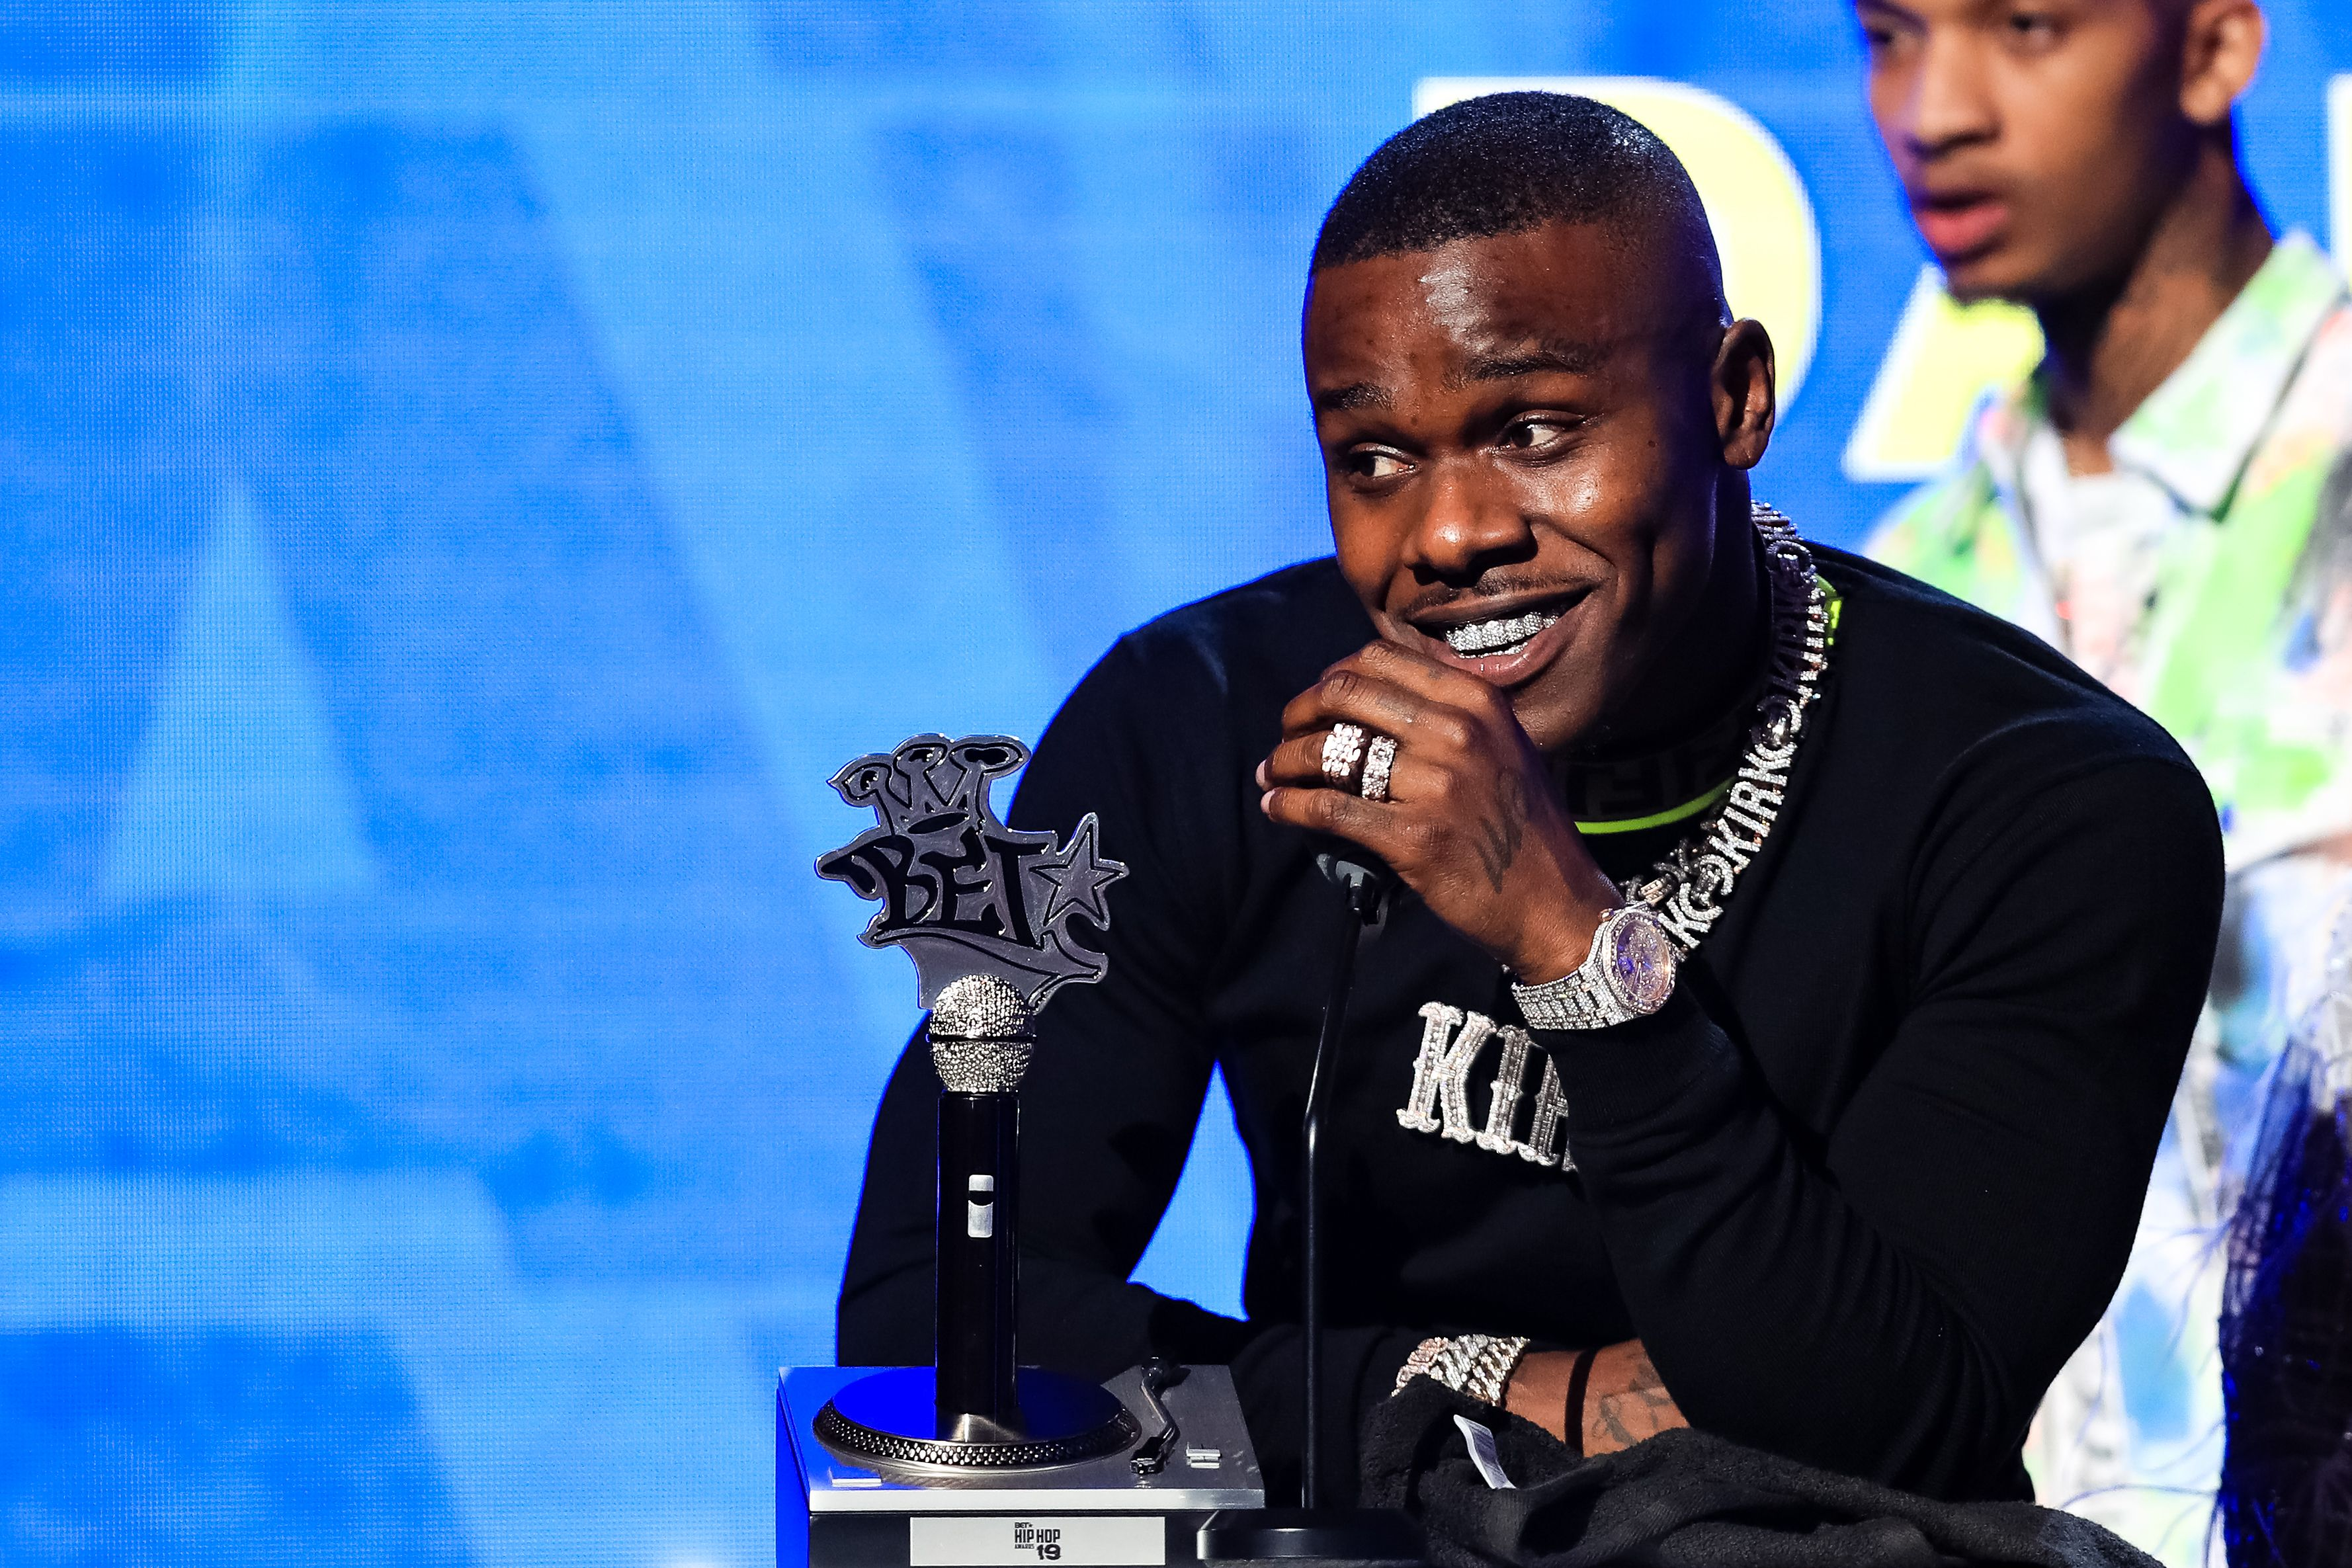 DaBaby winning 'Best New Artist' award at 2019 BET Hip-Hop Awards.